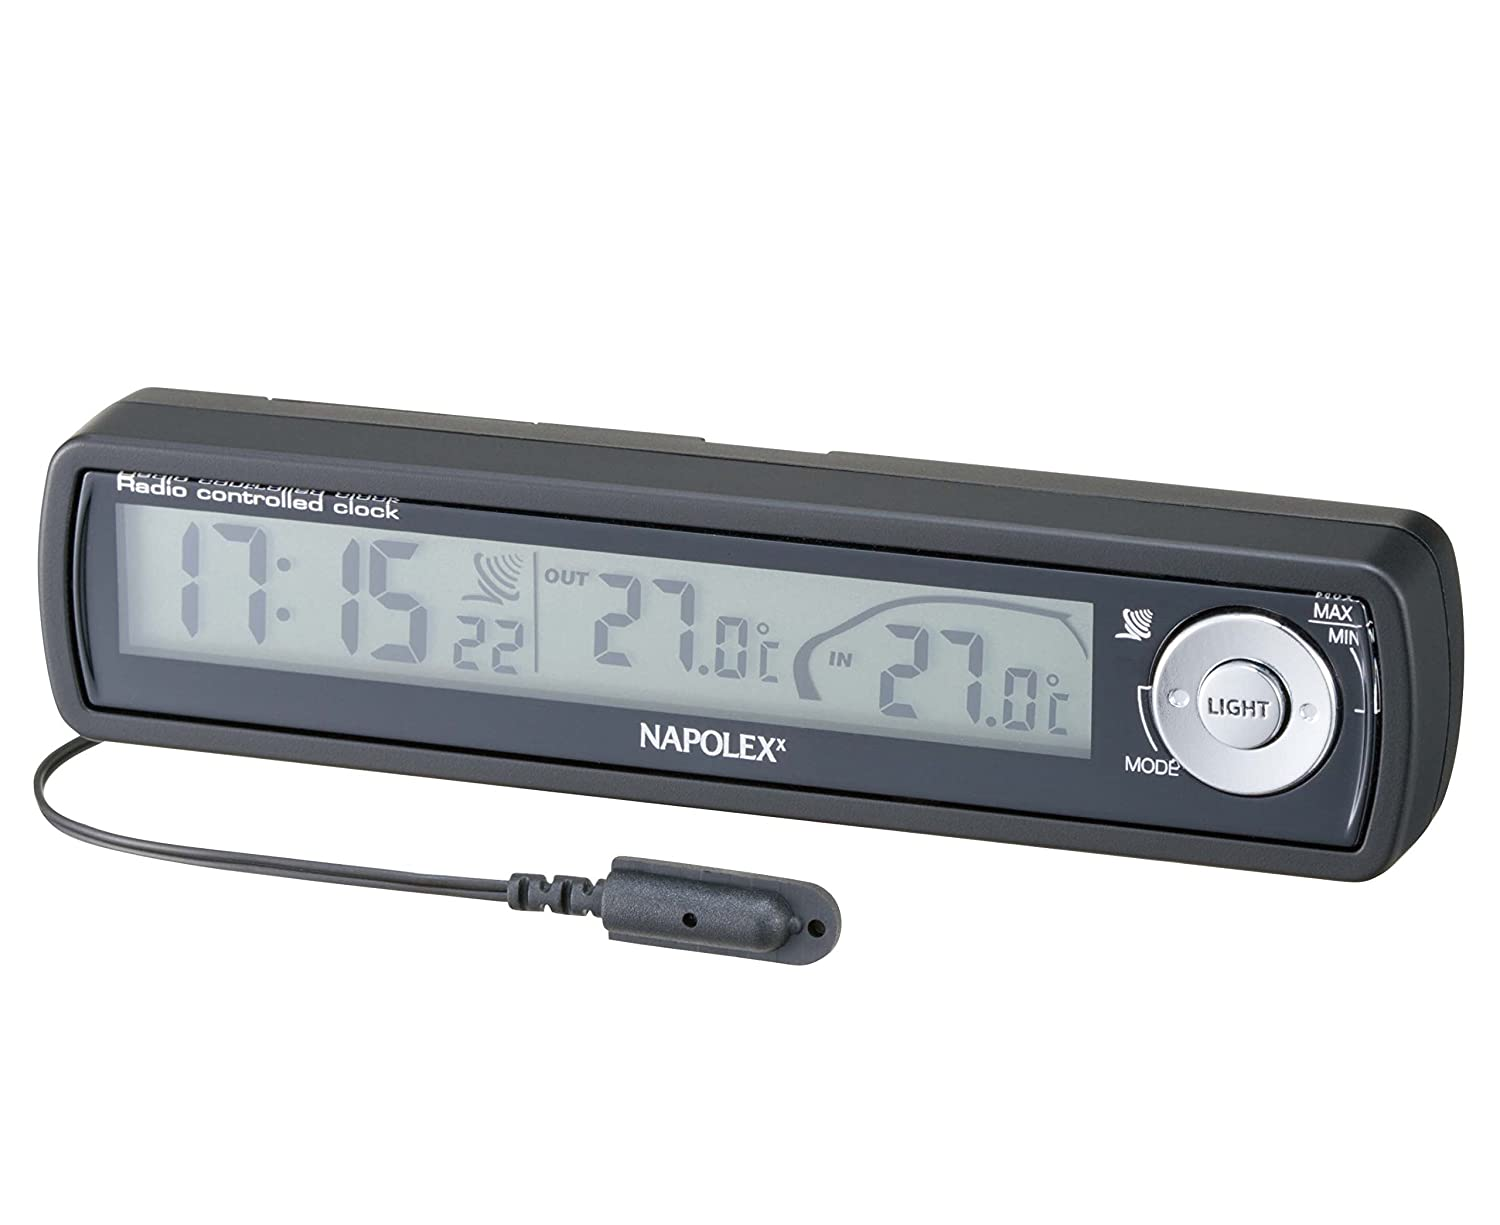 Napolex Fizz-855 Car Dash Mounts Digital Radio Clock with Inside and Outside Thermometer